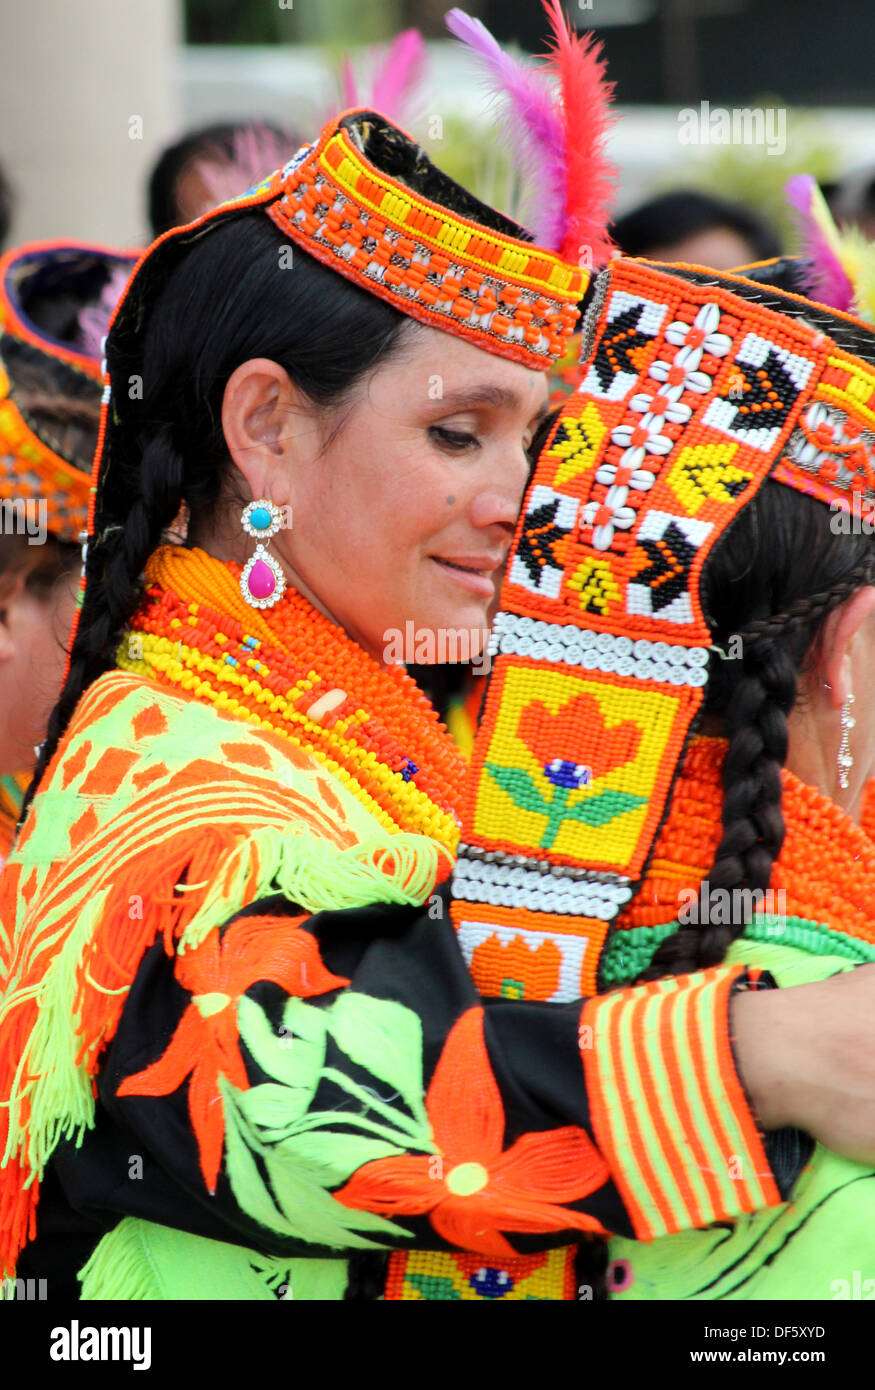 Karachi, Pakistan. 27 Sept 2013. Kalash women from Chitral Pakistan perform a dance at the largest trade fair in Pakistan. © Aine Moorad/Alamy Live News - Stock Image